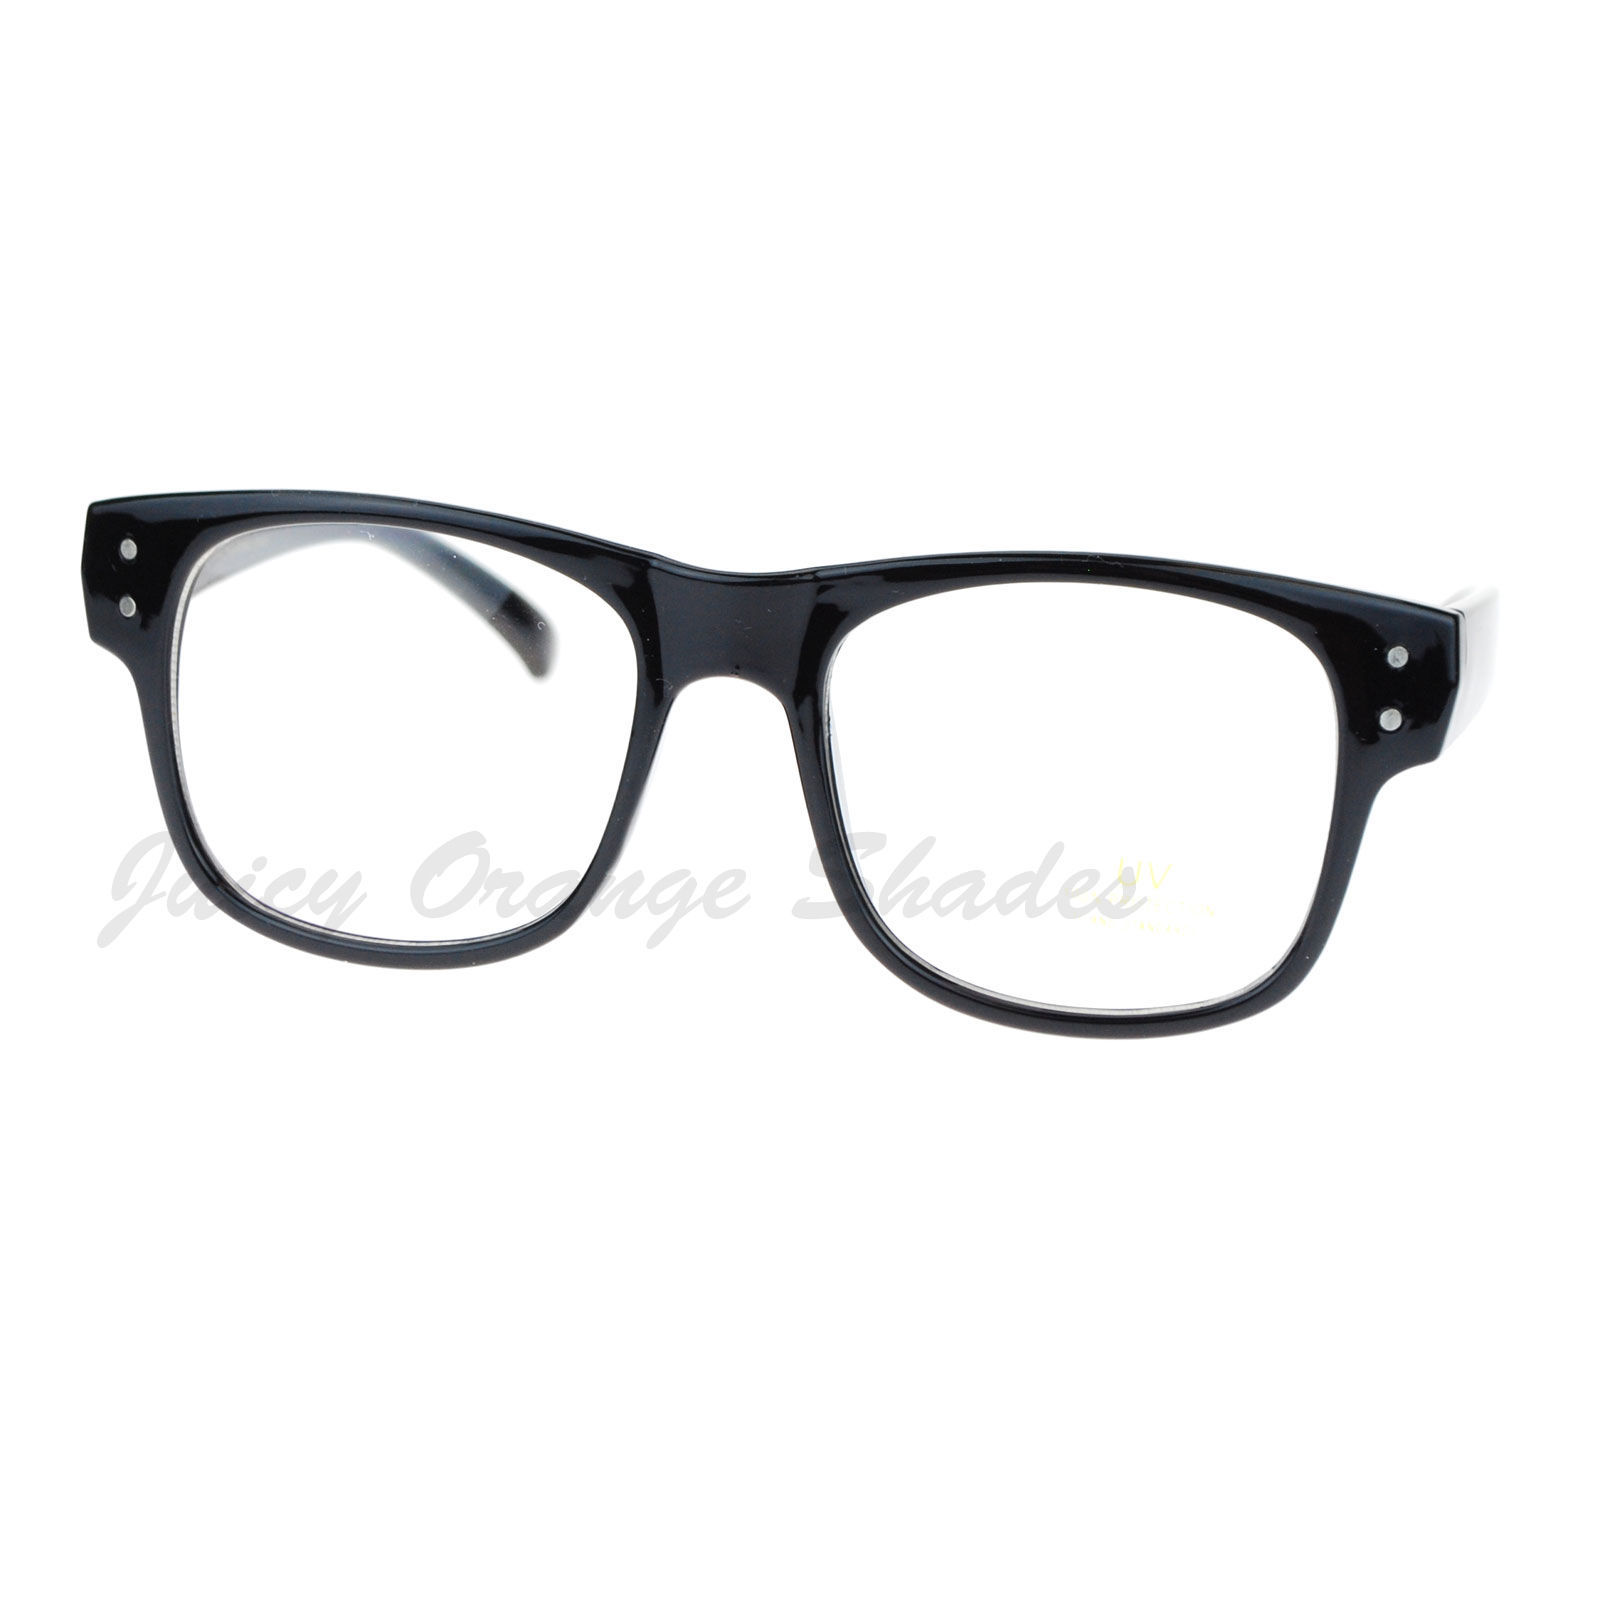 Square Framed Fashion Glasses : Square Frame Clear Lens Eyeglasses Nerdy Fashion Glasses ...